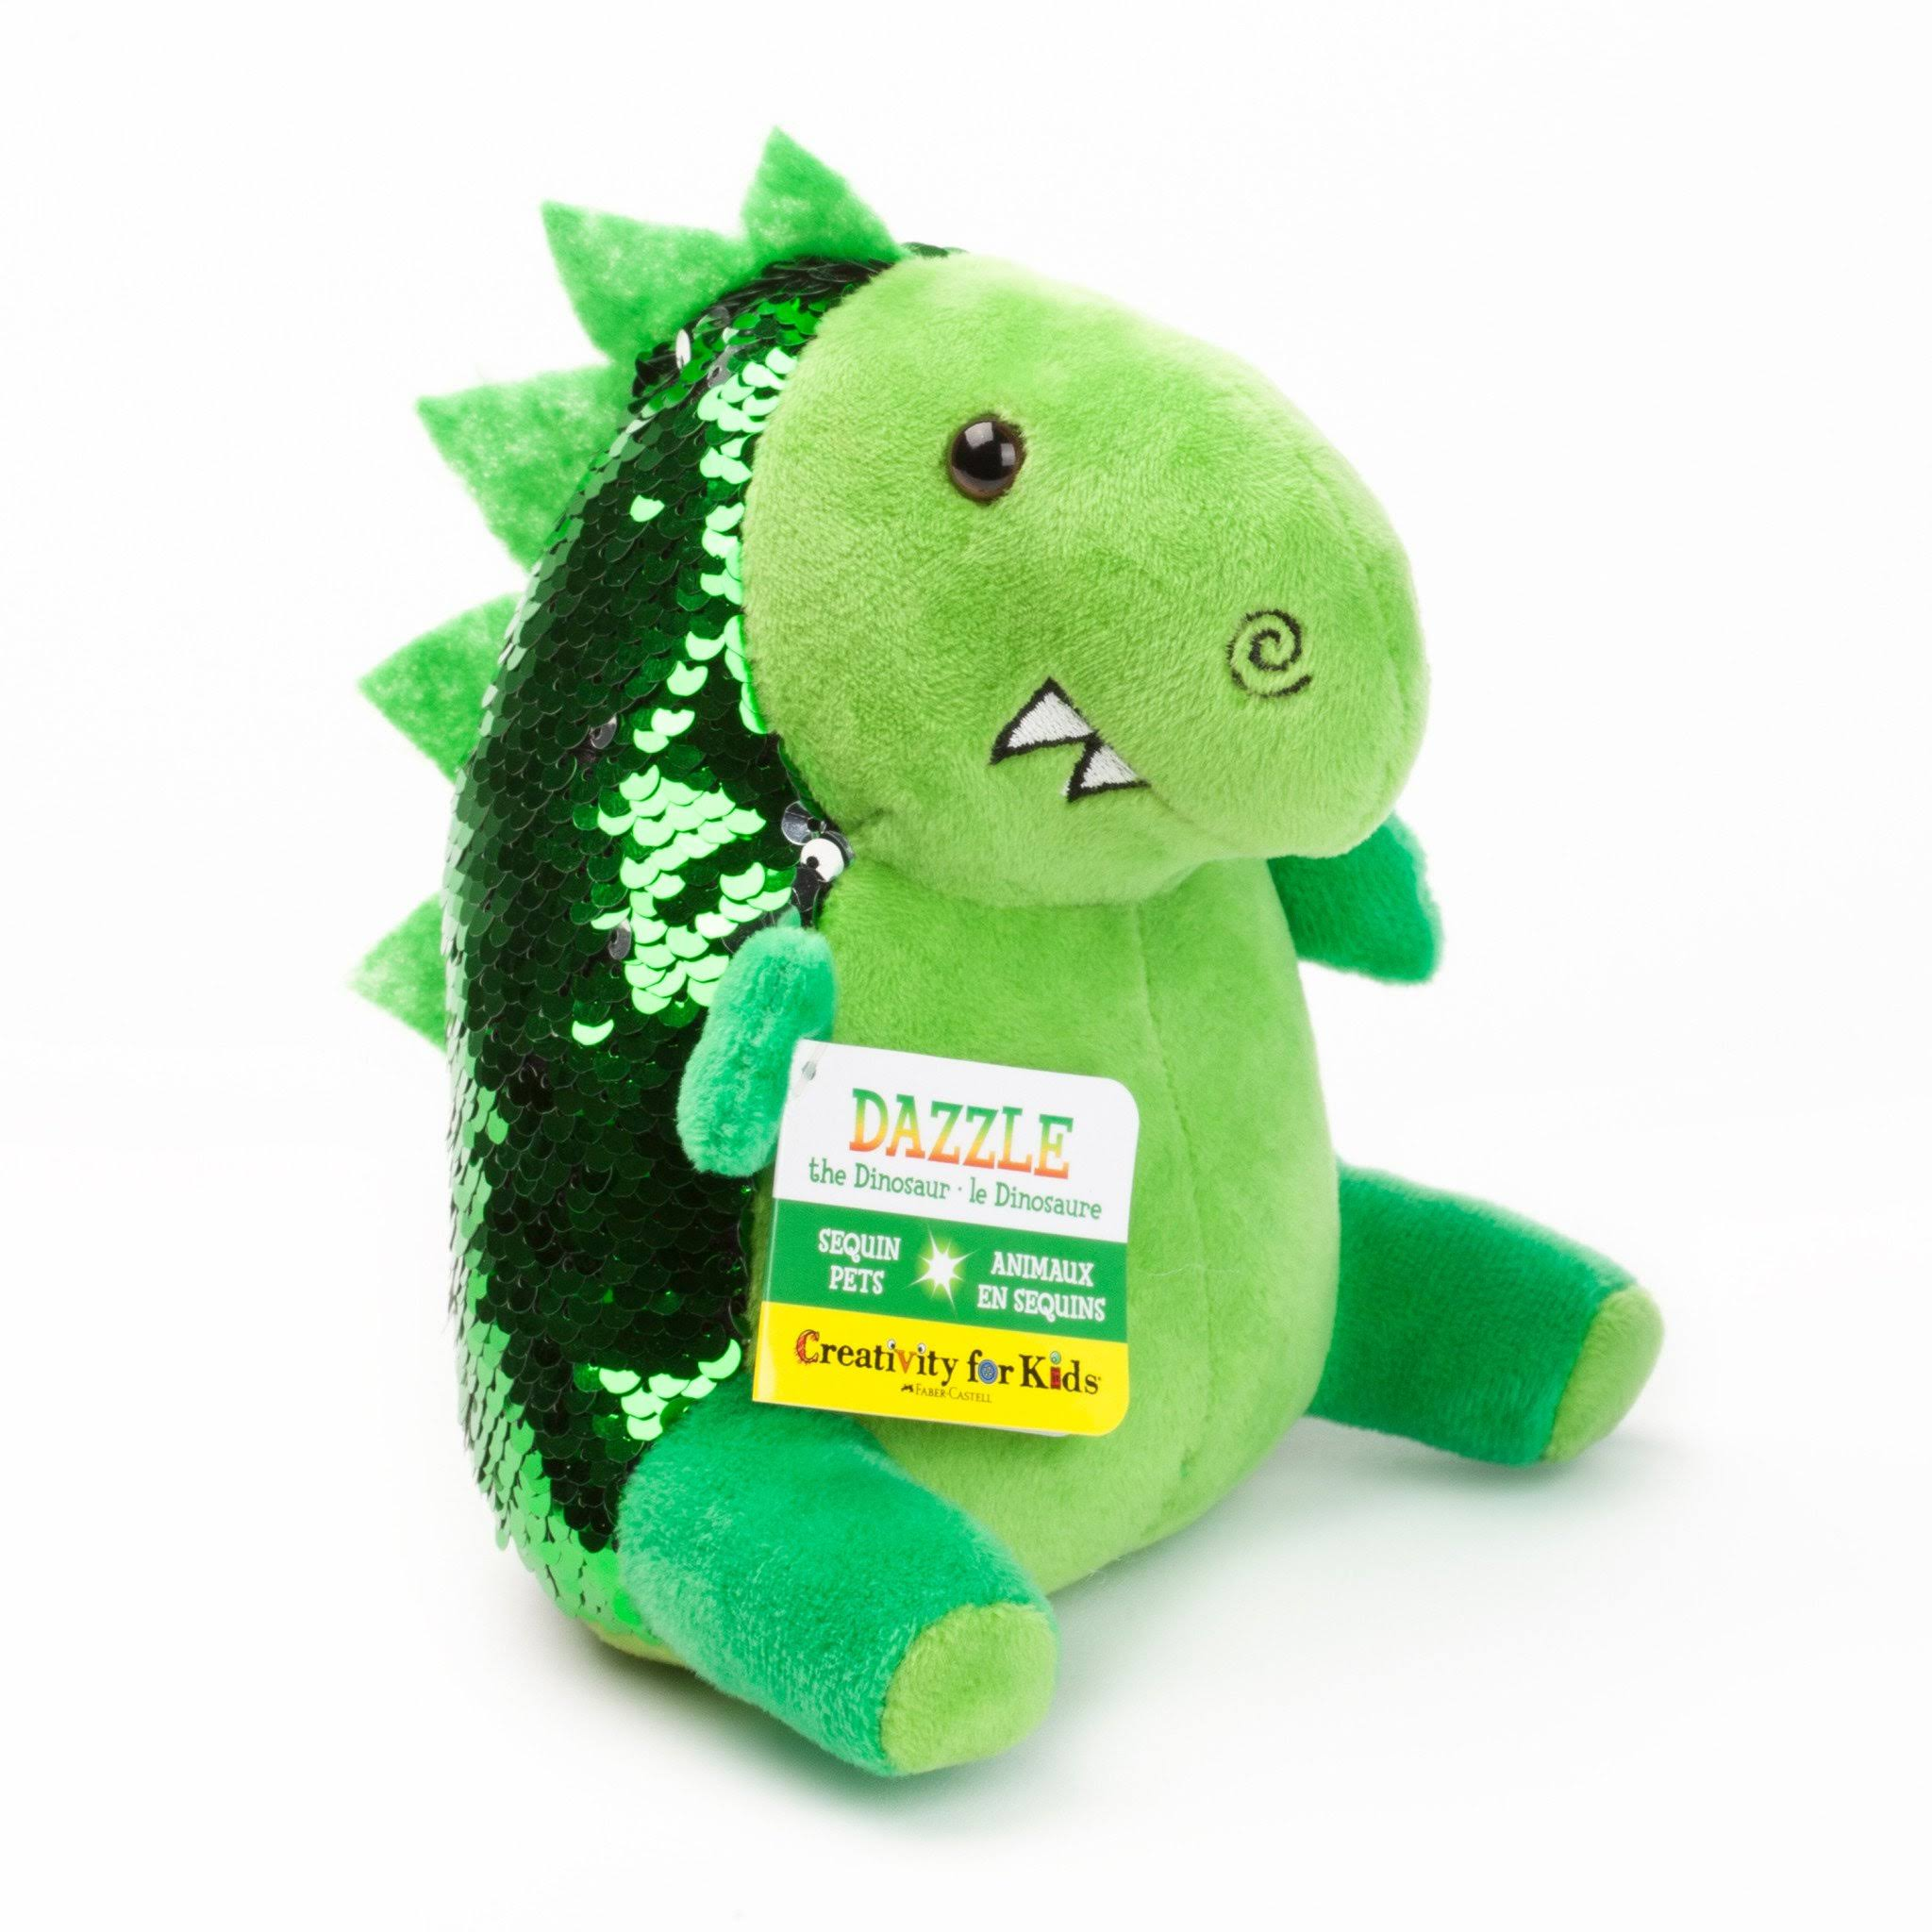 Creativity for Kids | Sequin Pets Mini ~ Dazzle The Dinosaur